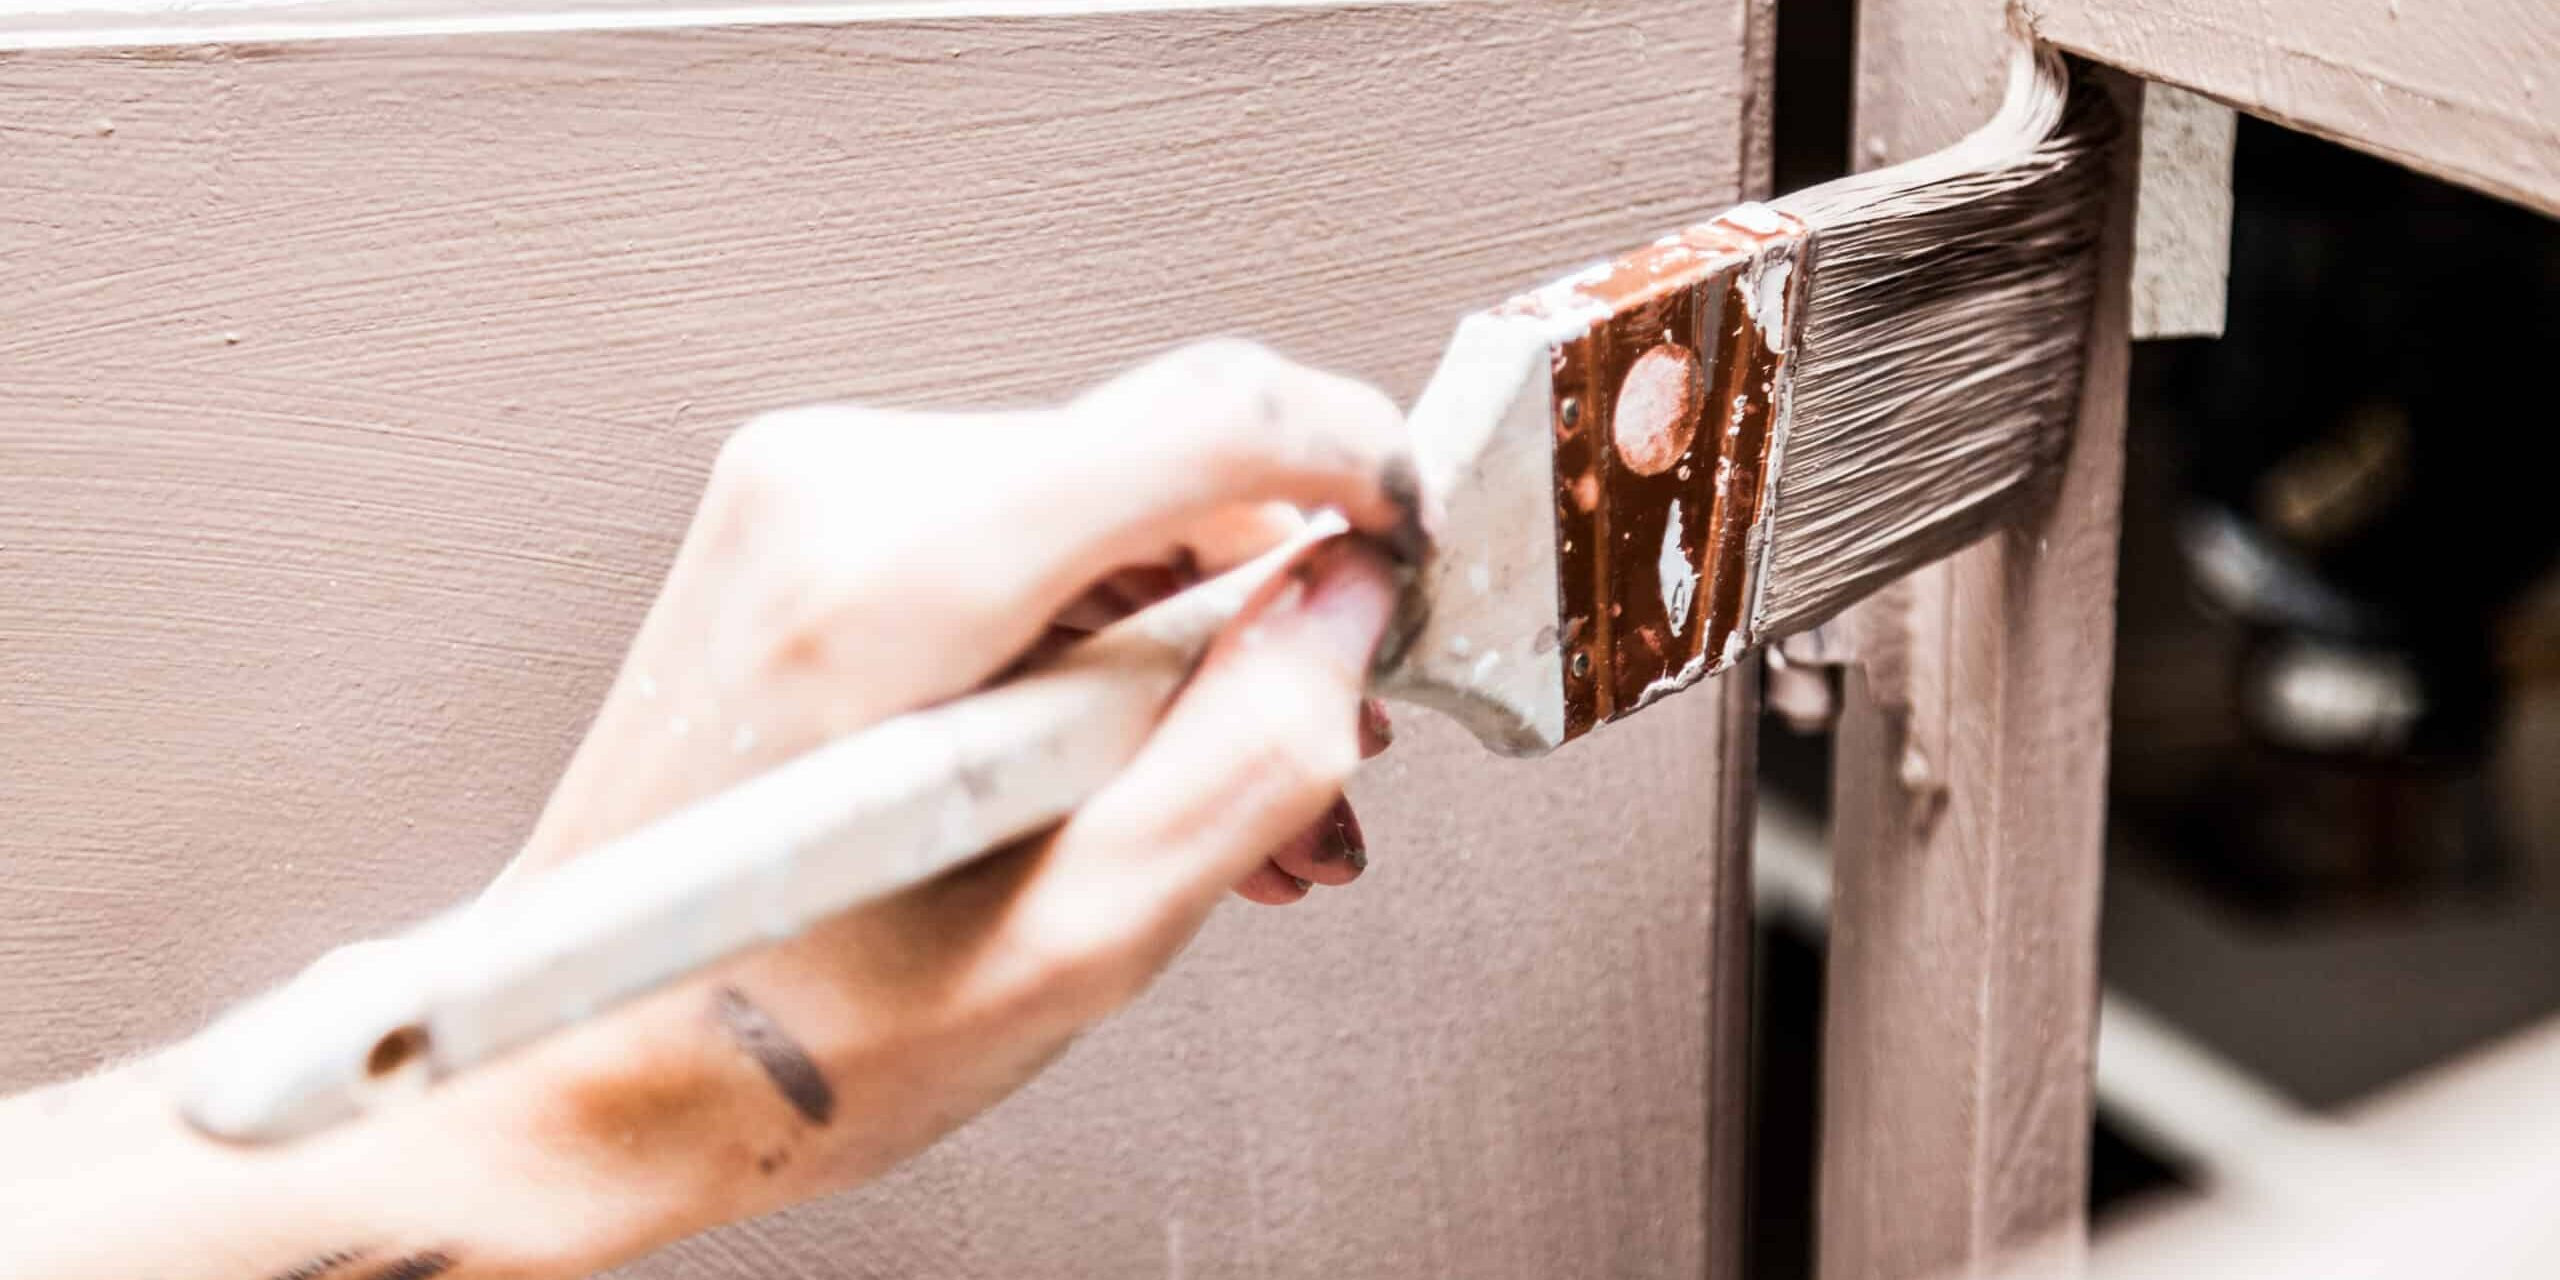 Closeup of Person Holding Paint Brush and Painting Kitchen Cabinets